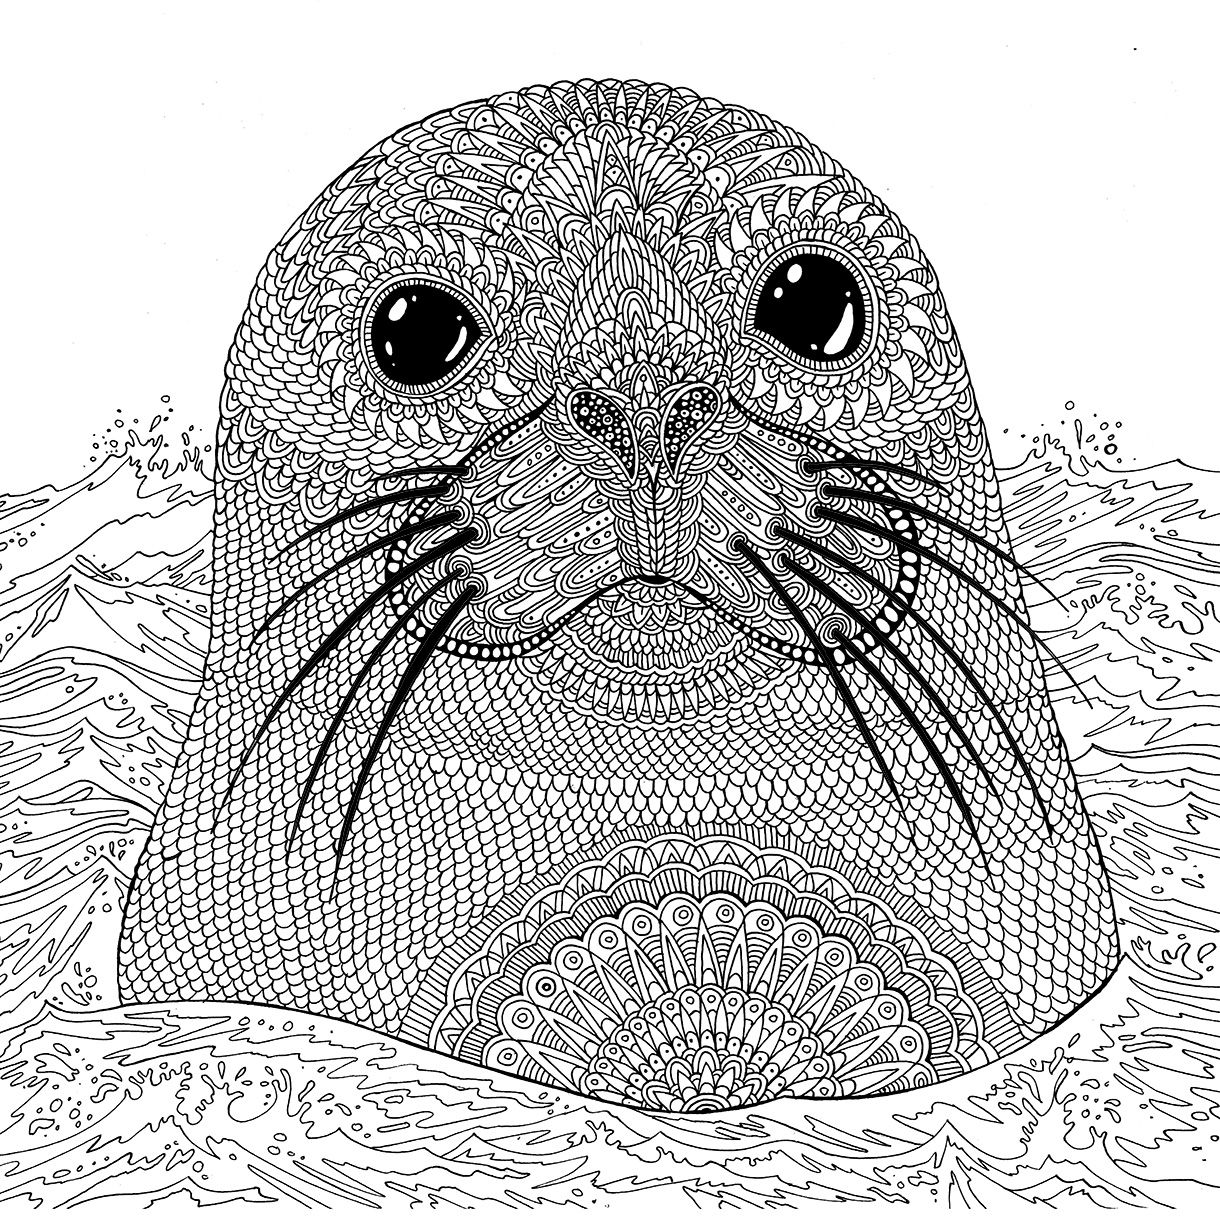 Seal The Aquarium Colouring Book Richard Merritt Seal Adultcolouring Colouringbook Aquarium Illustration Rich Animal Coloring Pages Sea Animals Color